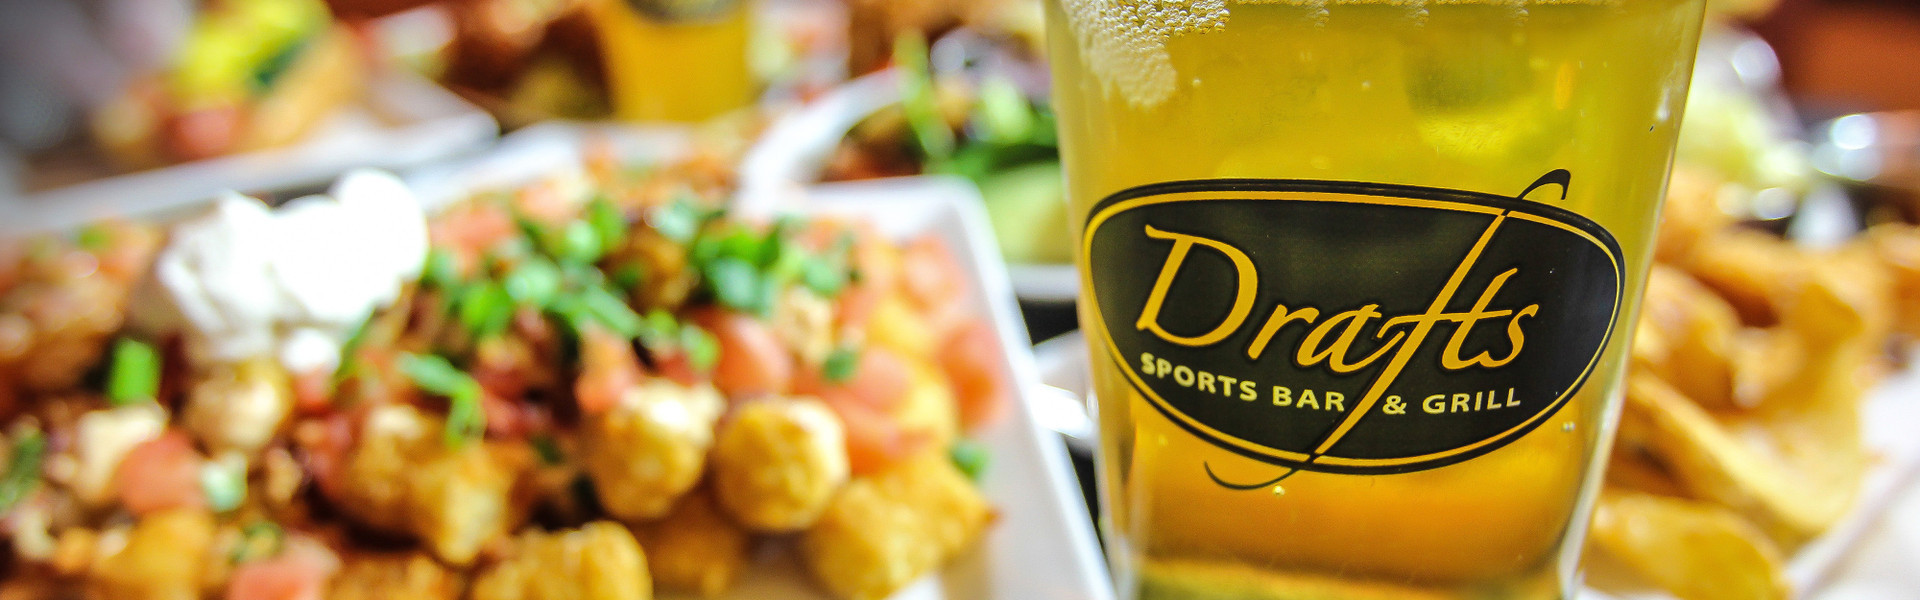 Food from Menu For Drafts Sports Bar & Grill | Westgate Lakes Resort & Spa